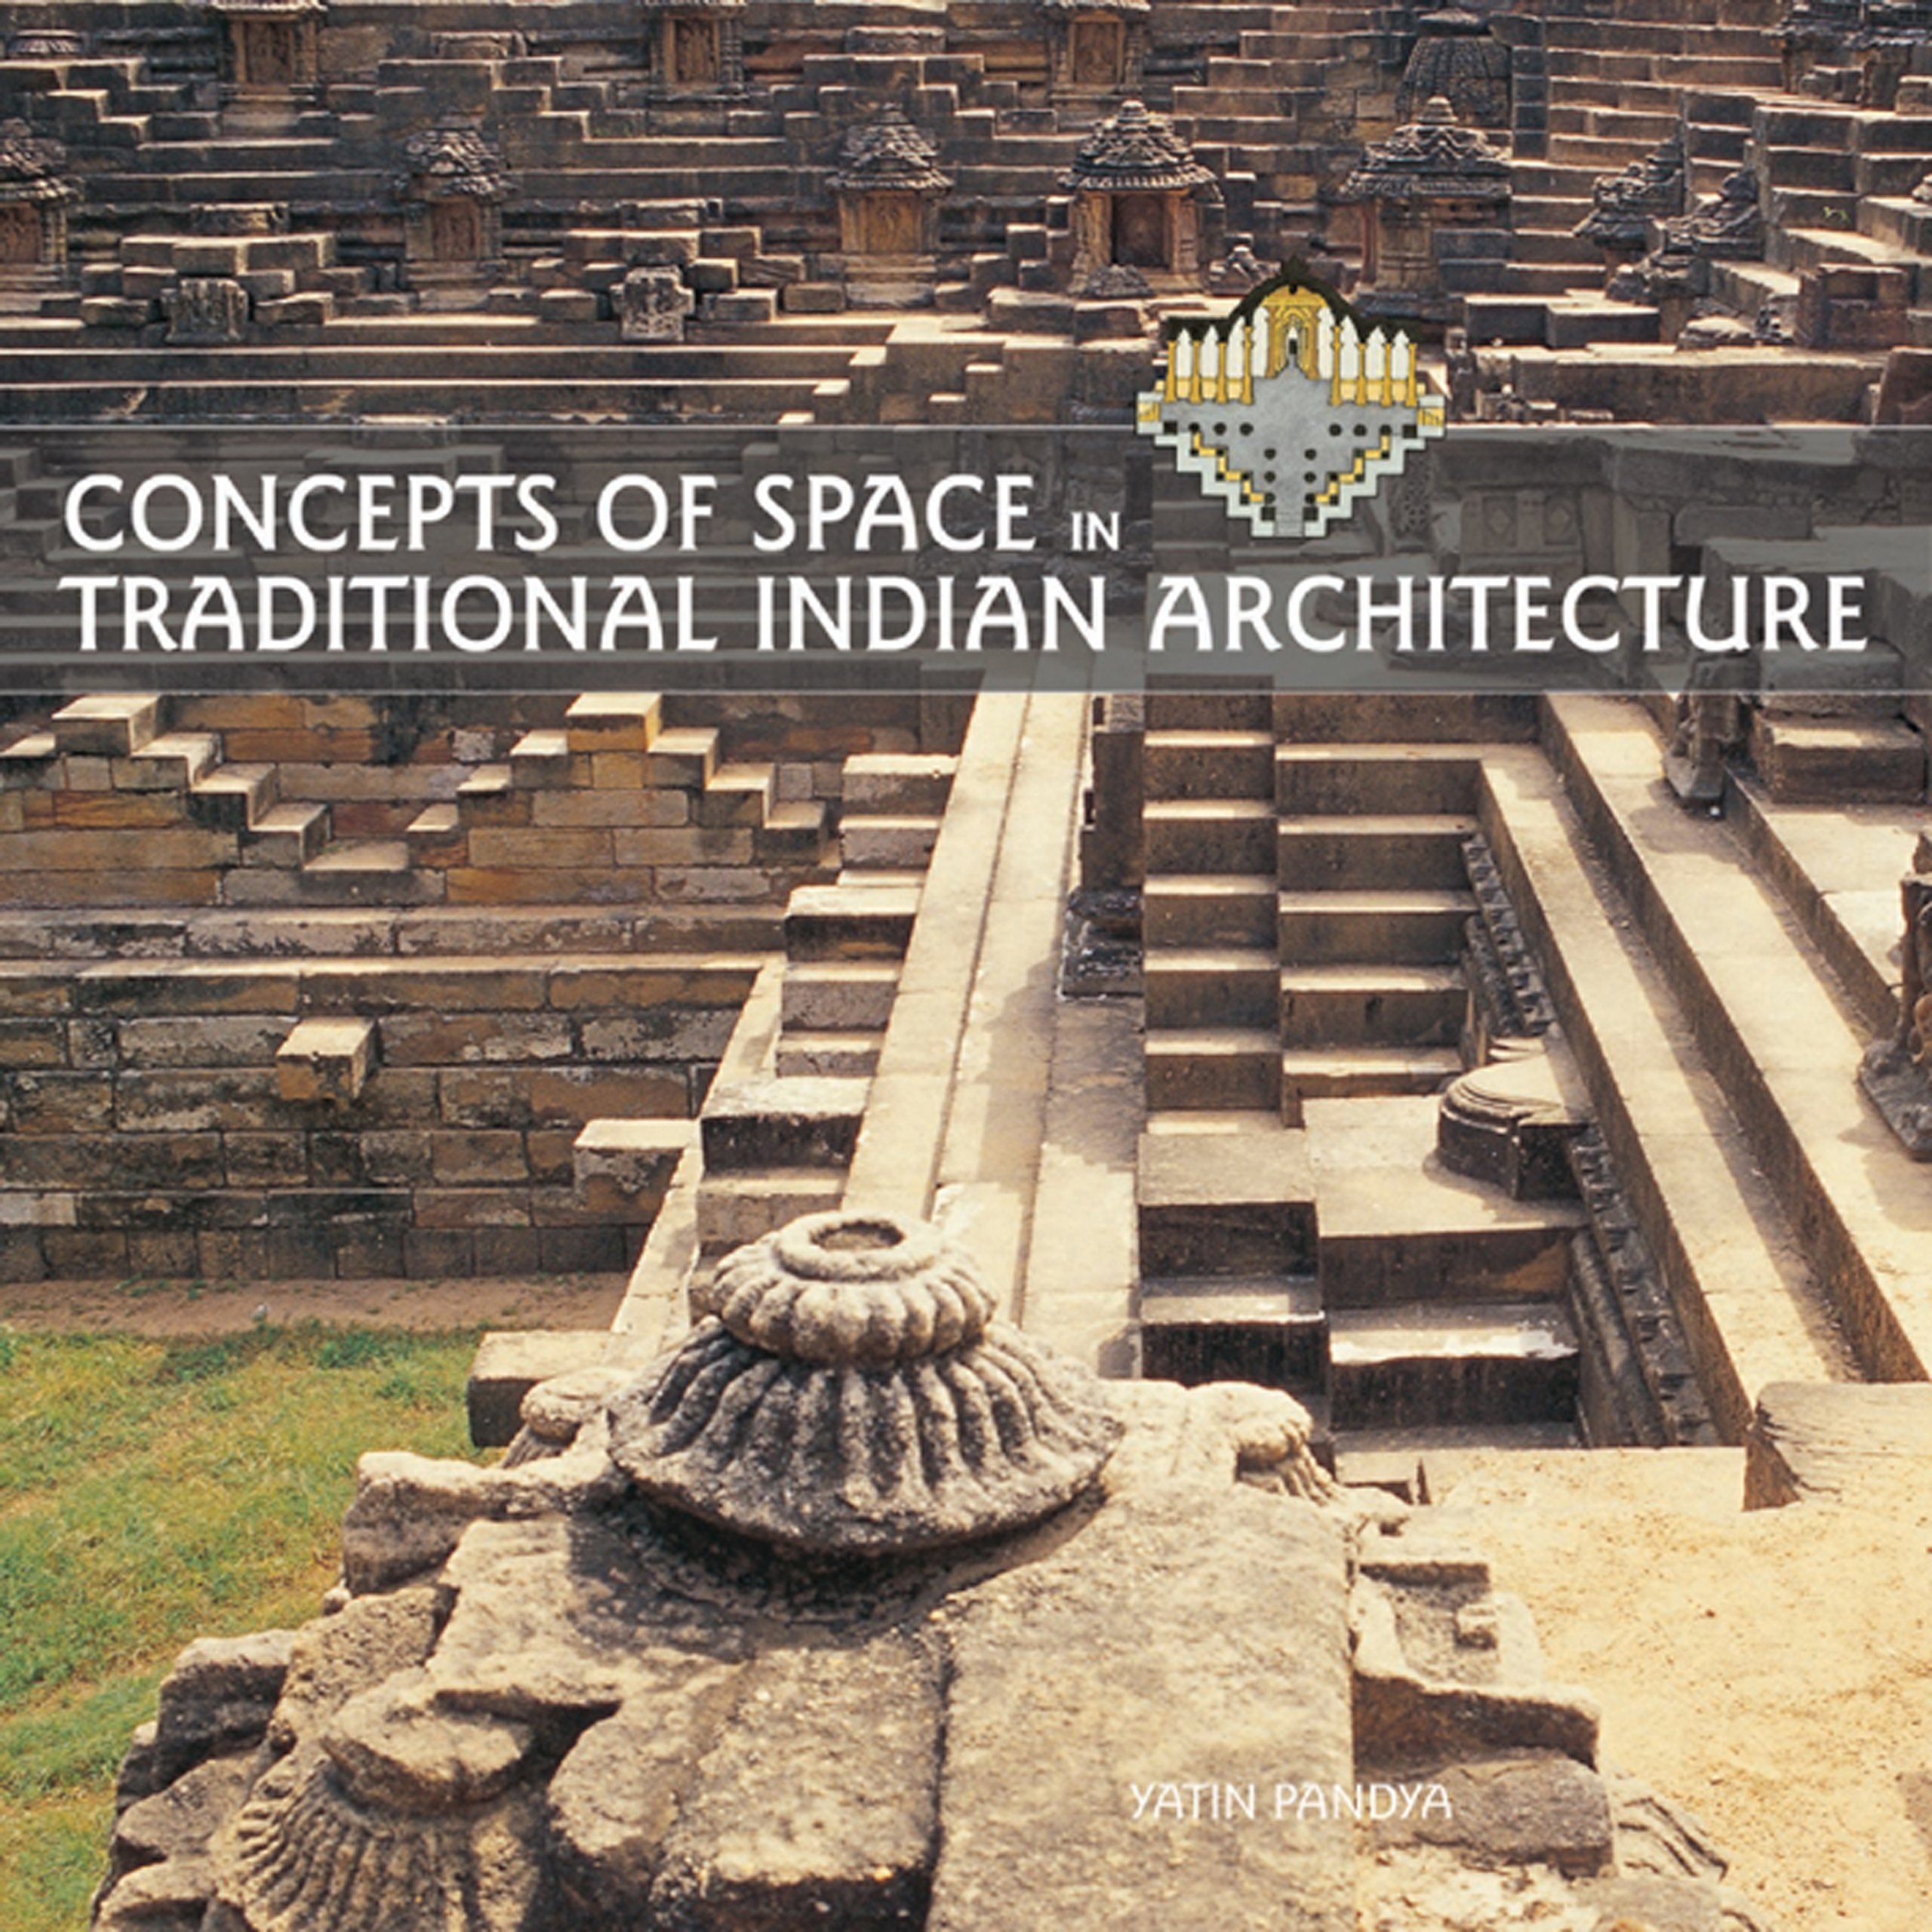 buy concepts of space in traditional indian architecture book online